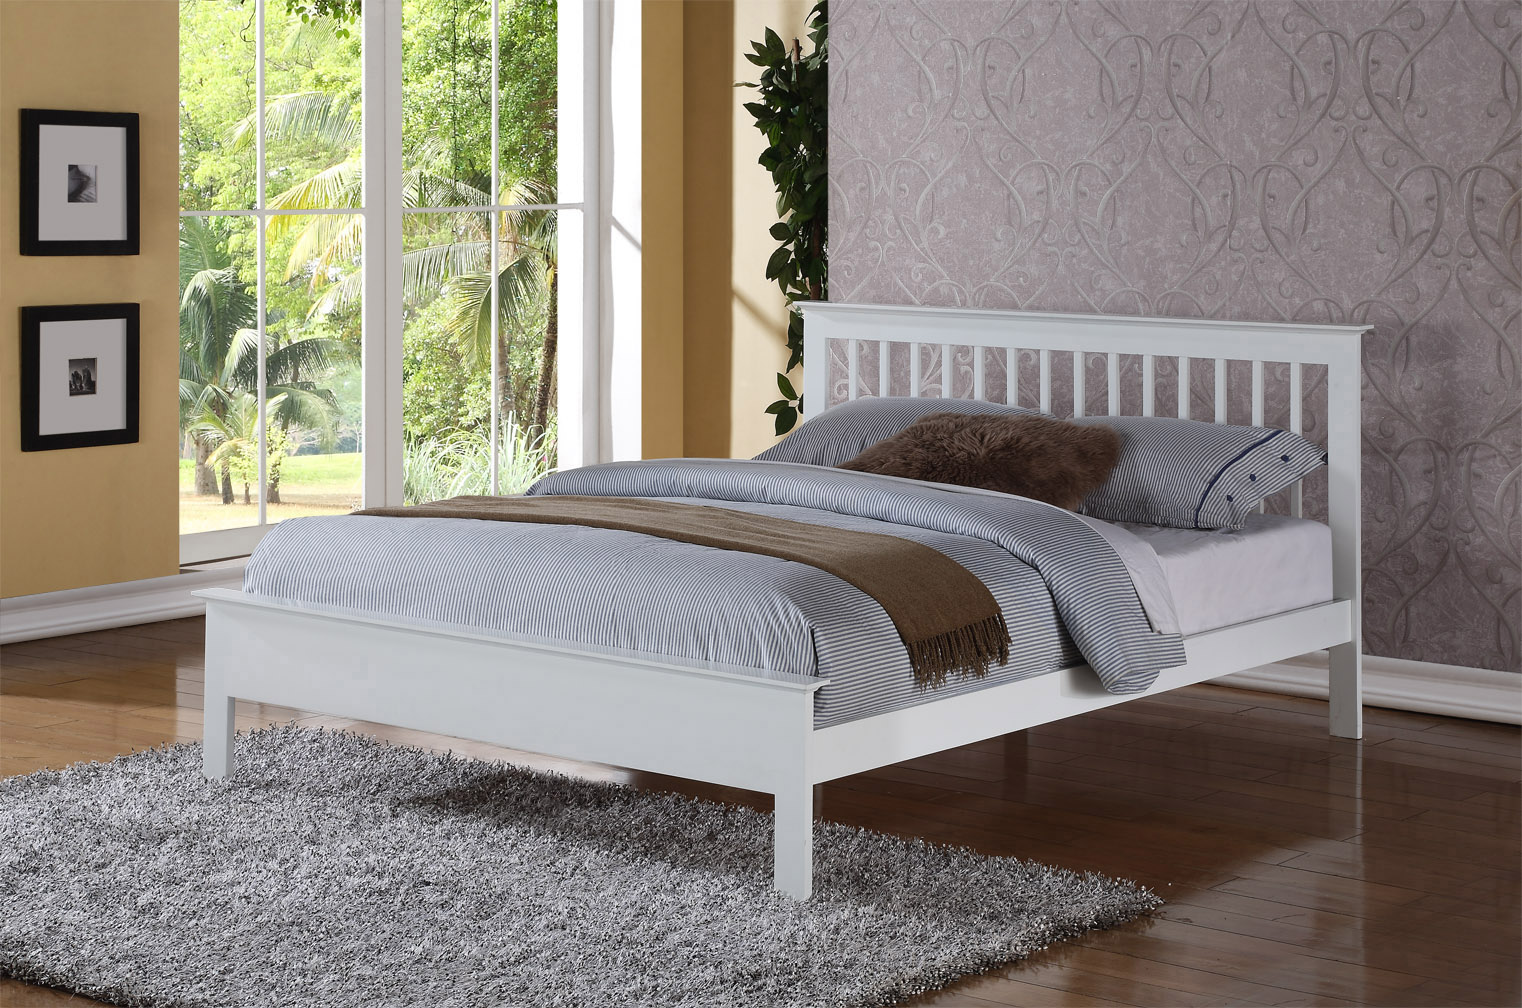 Pentre White Wooden Double Bed